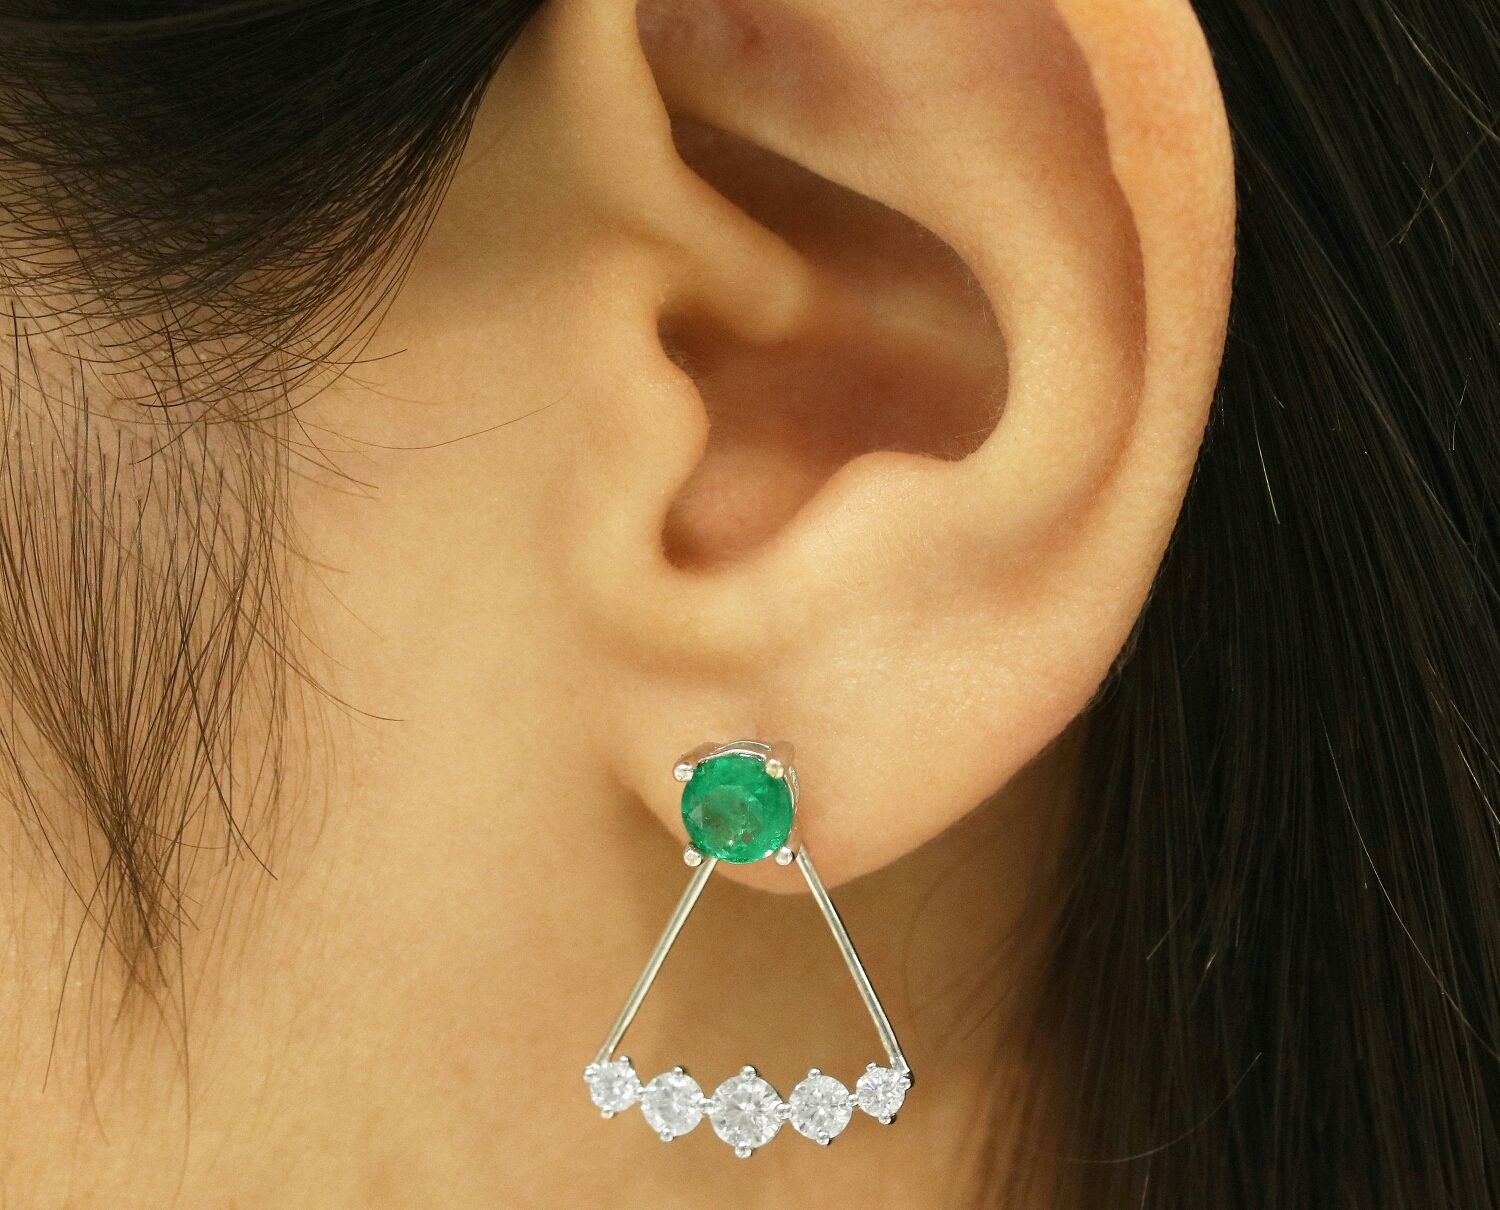 Earrings Handmade Livemaster 14k Emerald Earring Stud Jacket